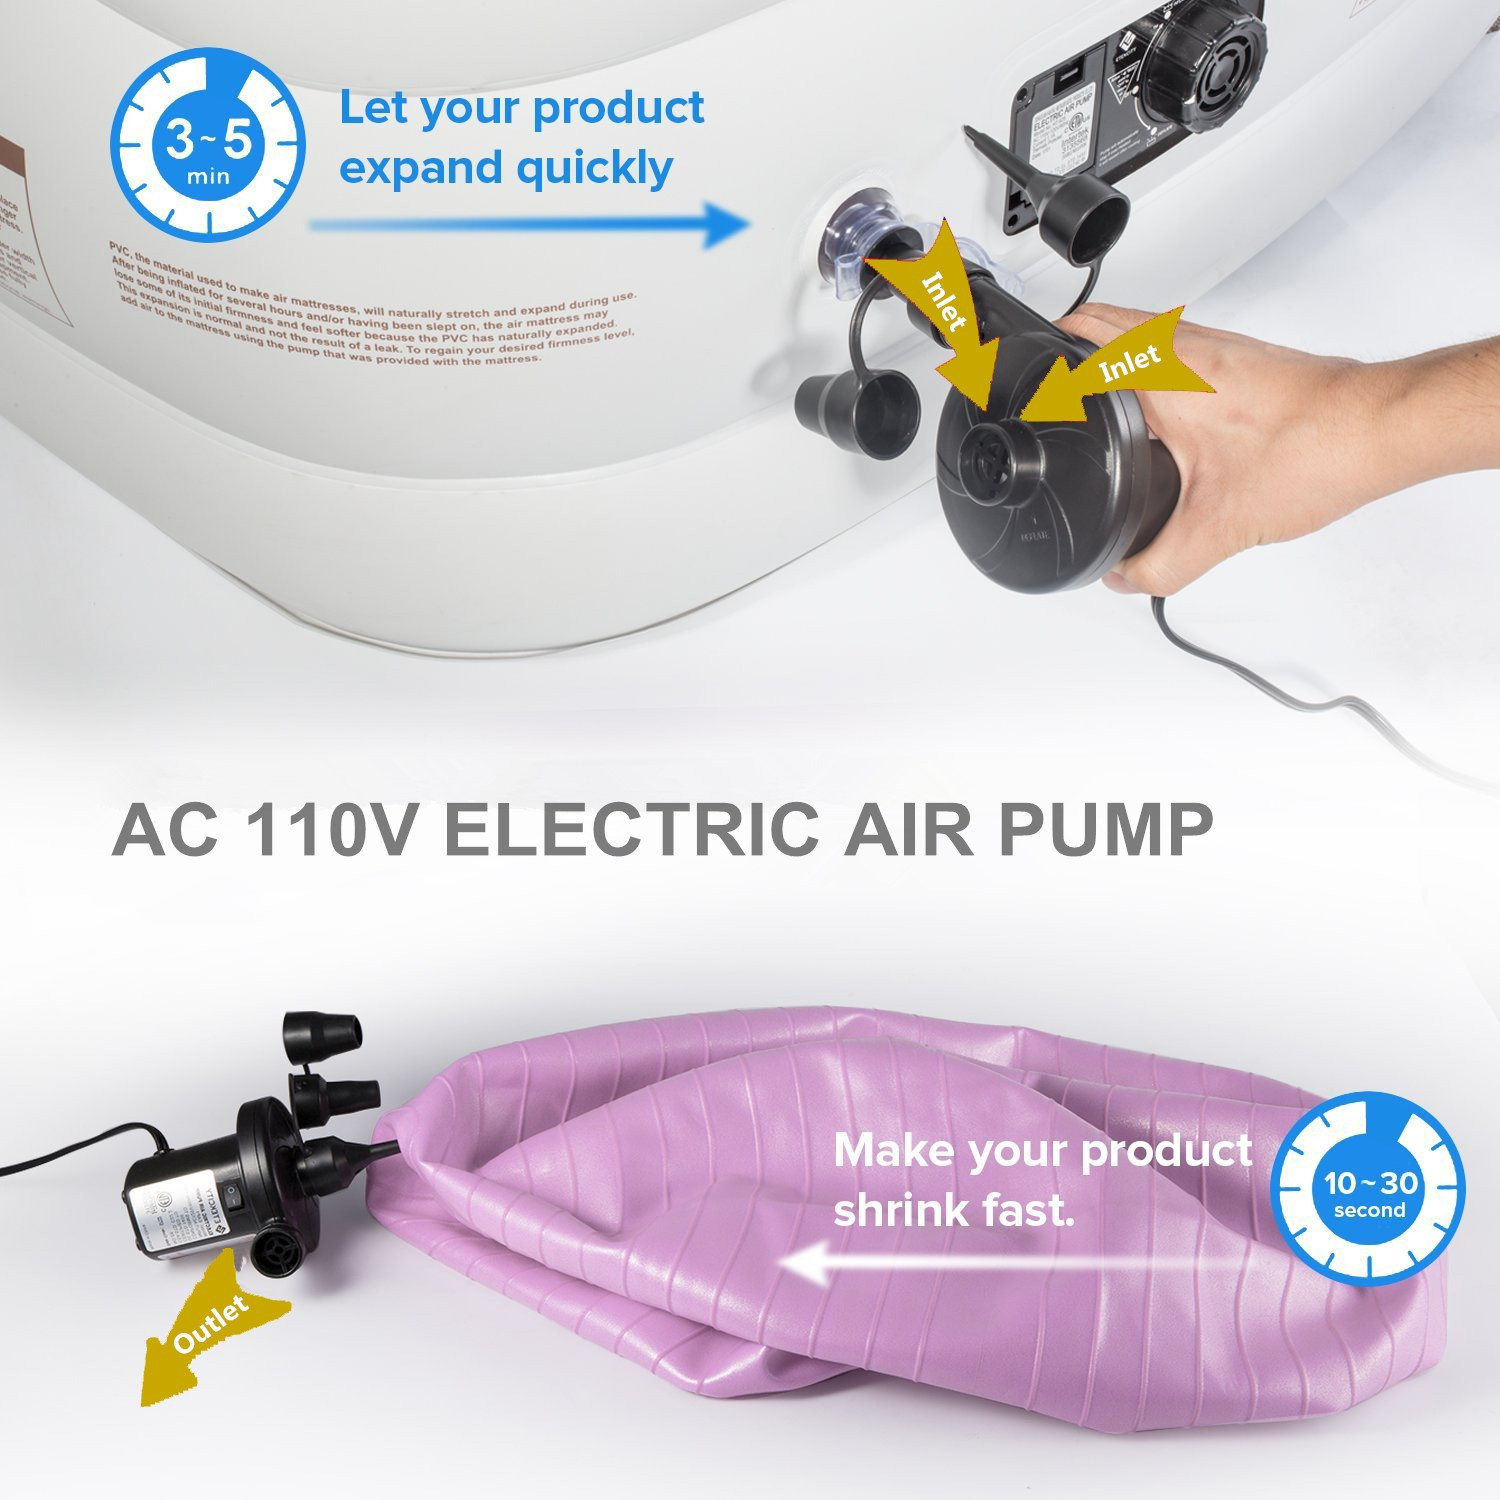 Wing Ying Electric Air Pump 110V AC Quick-Fill Pump for Inflatables Air Mattress Toy Inflatable Pool Swimming Ring Raft Boat Bed by Wing Ying (Image #5)